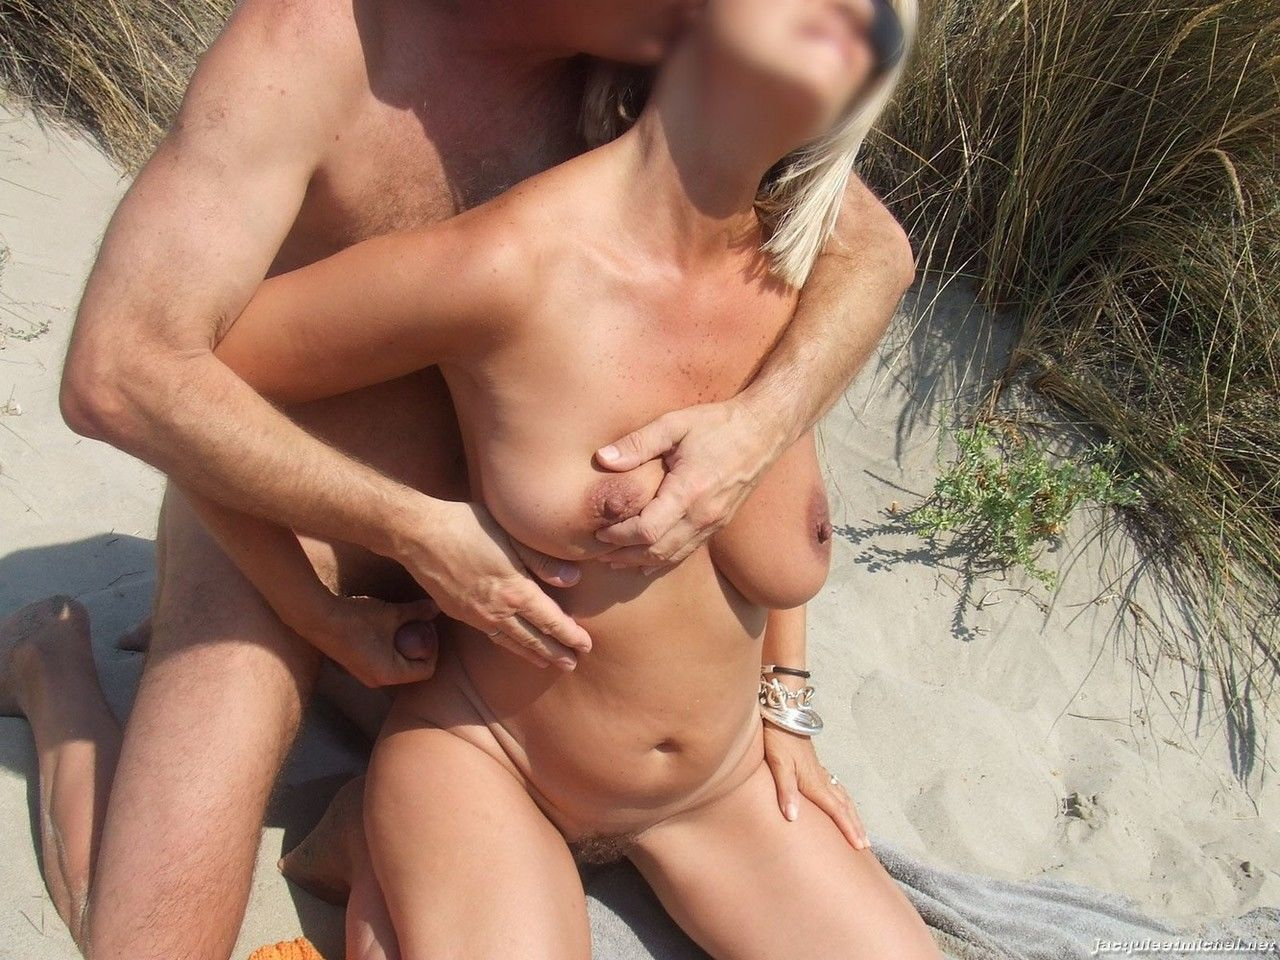 gros cul video massage naturiste vaucluse